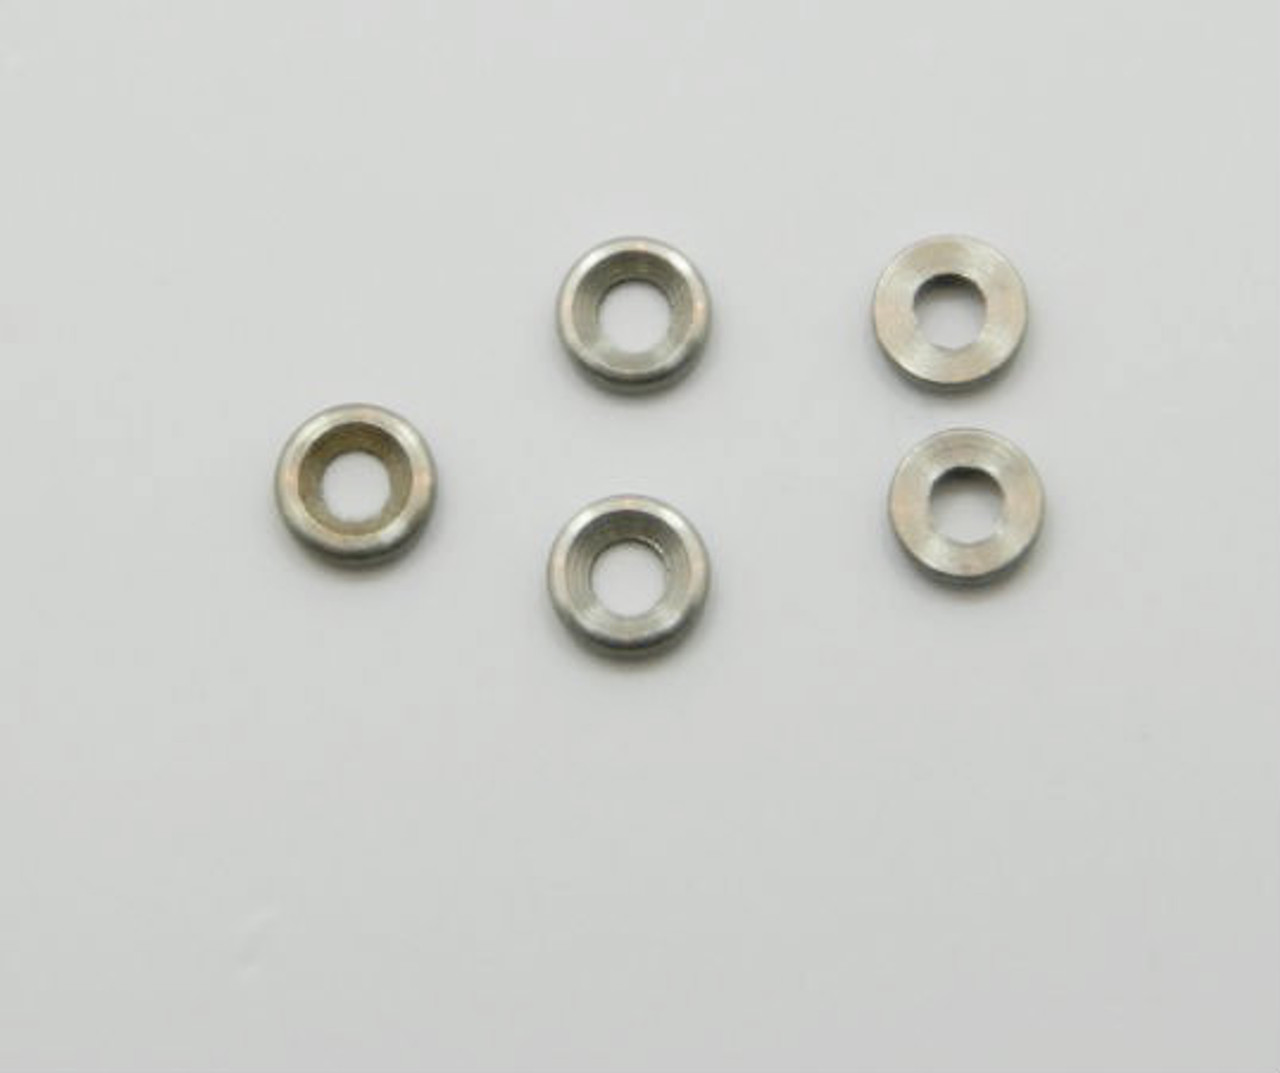 """Washer, metal inside hole 0.048"""" / 1.2mm outside diameter 0.105"""" / 2.6mm use with thread sizes  M1.0 to M1.2 and 000-120, 00-96 and 00-90 Material: Nickel silver a copper alloy resistant to tarnish often used in Jewelry and Eyewear part color is silver. Packaged Price per 100 pieces with bulk pricing available."""